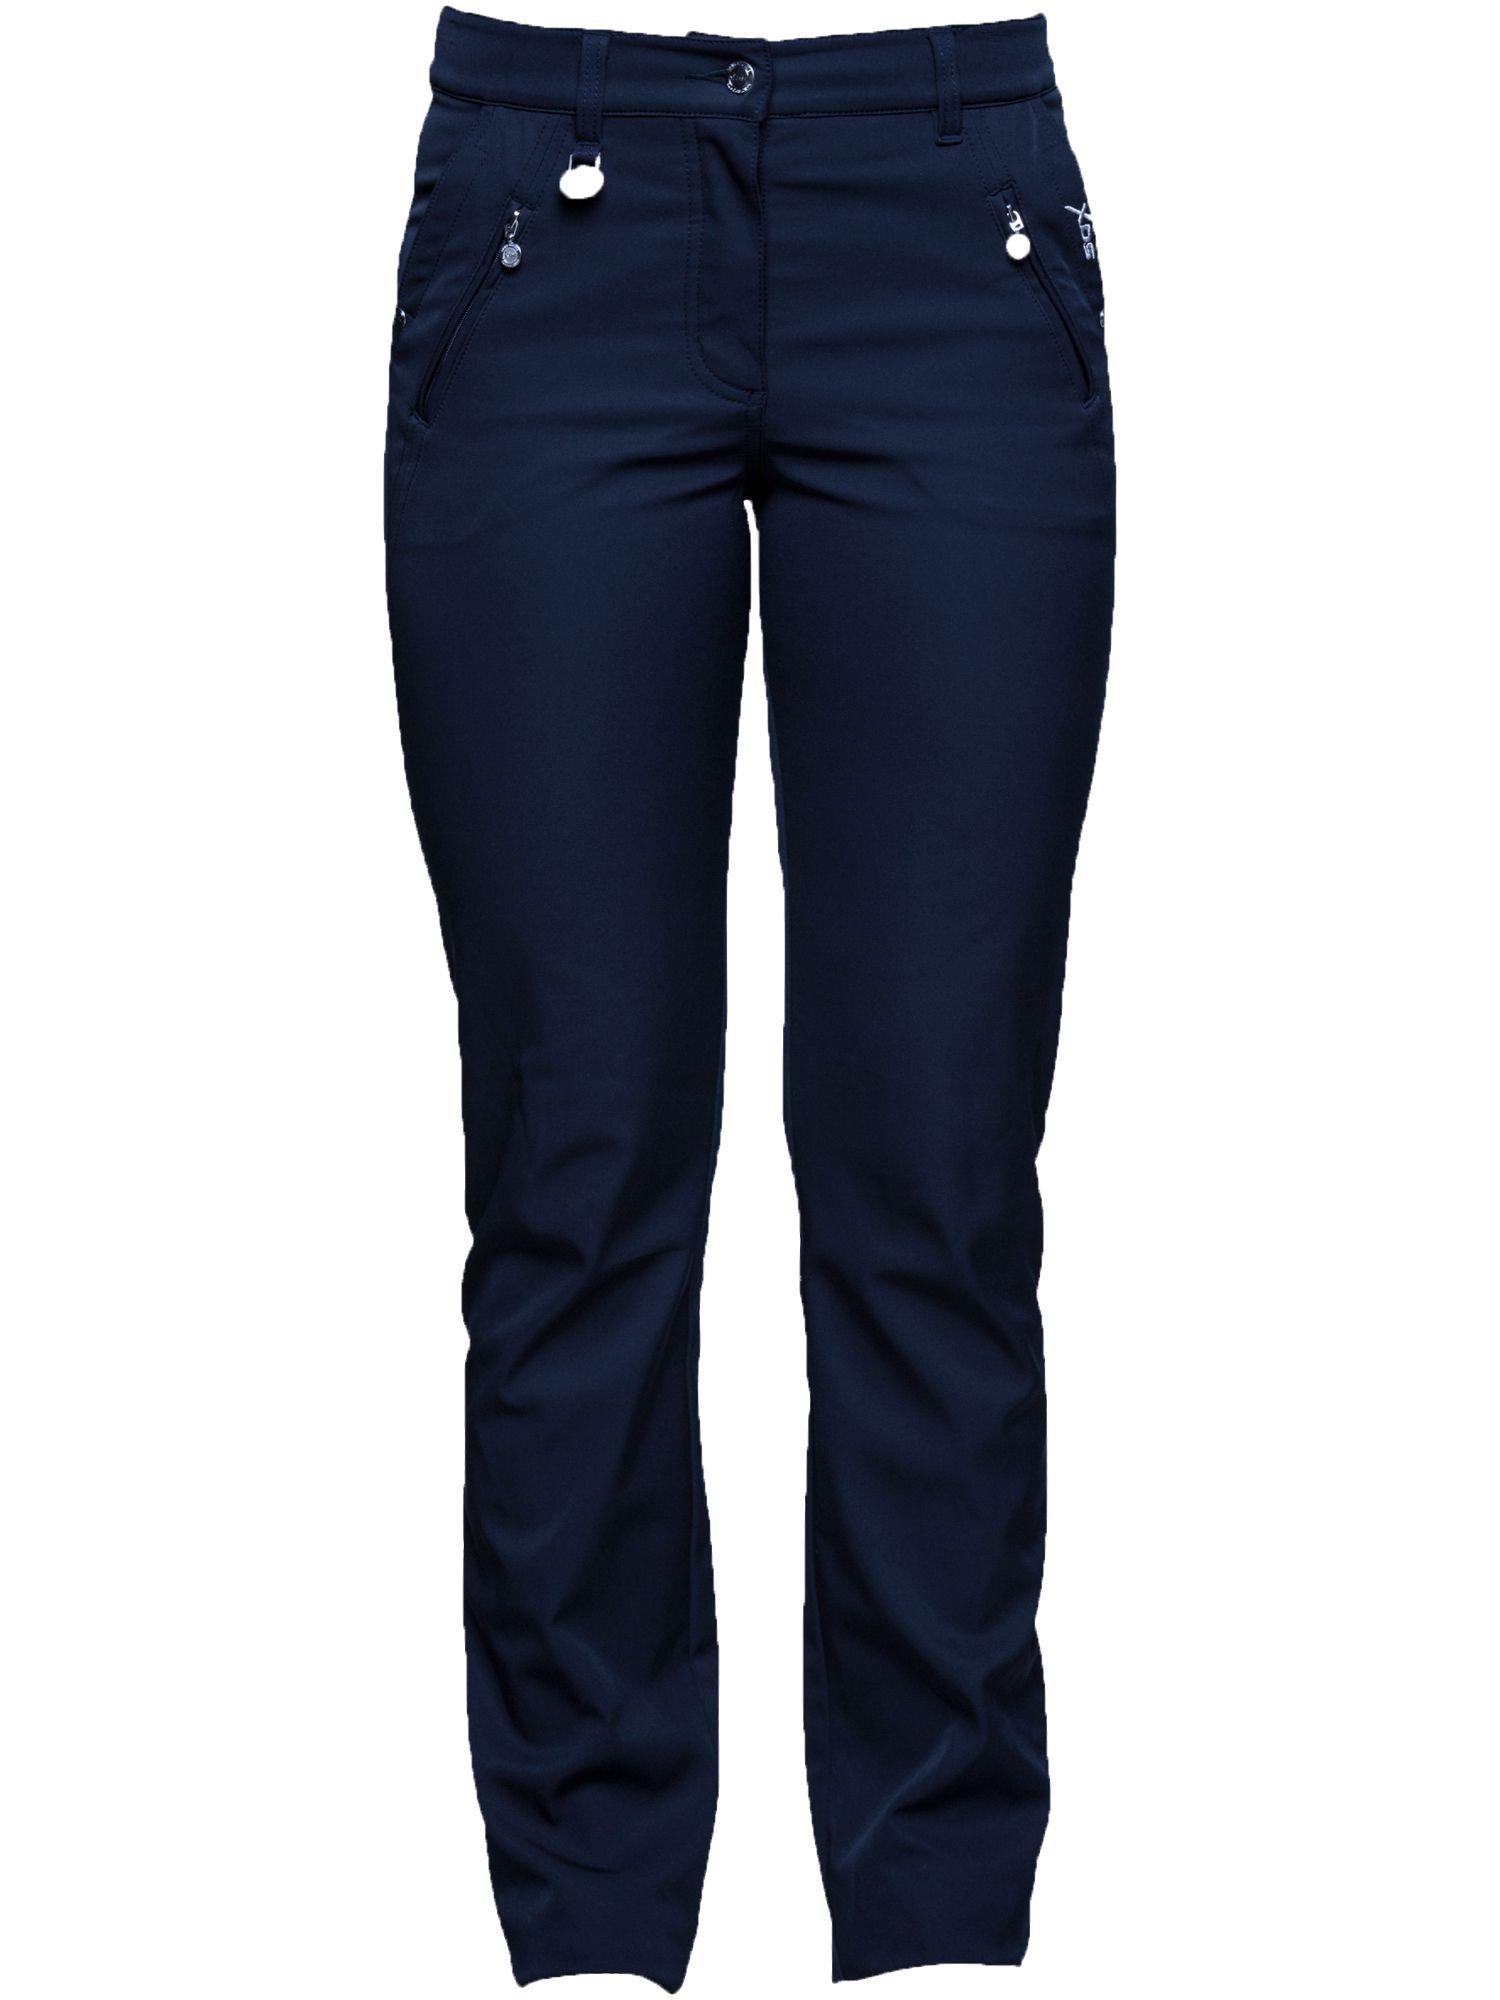 Daily Sports Irene Trousers, Blue